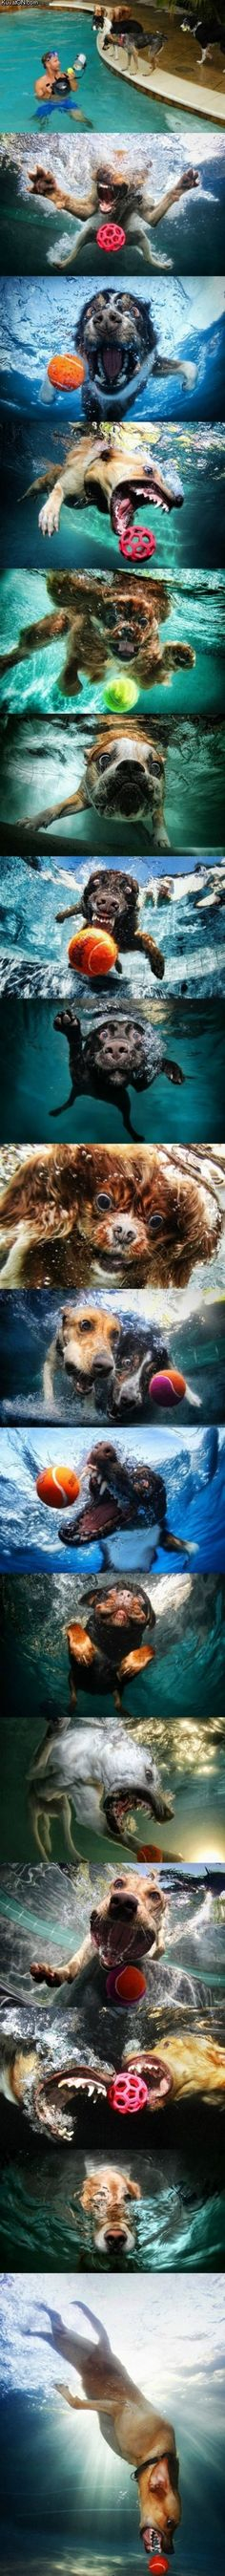 Dog pics with an underwater camera